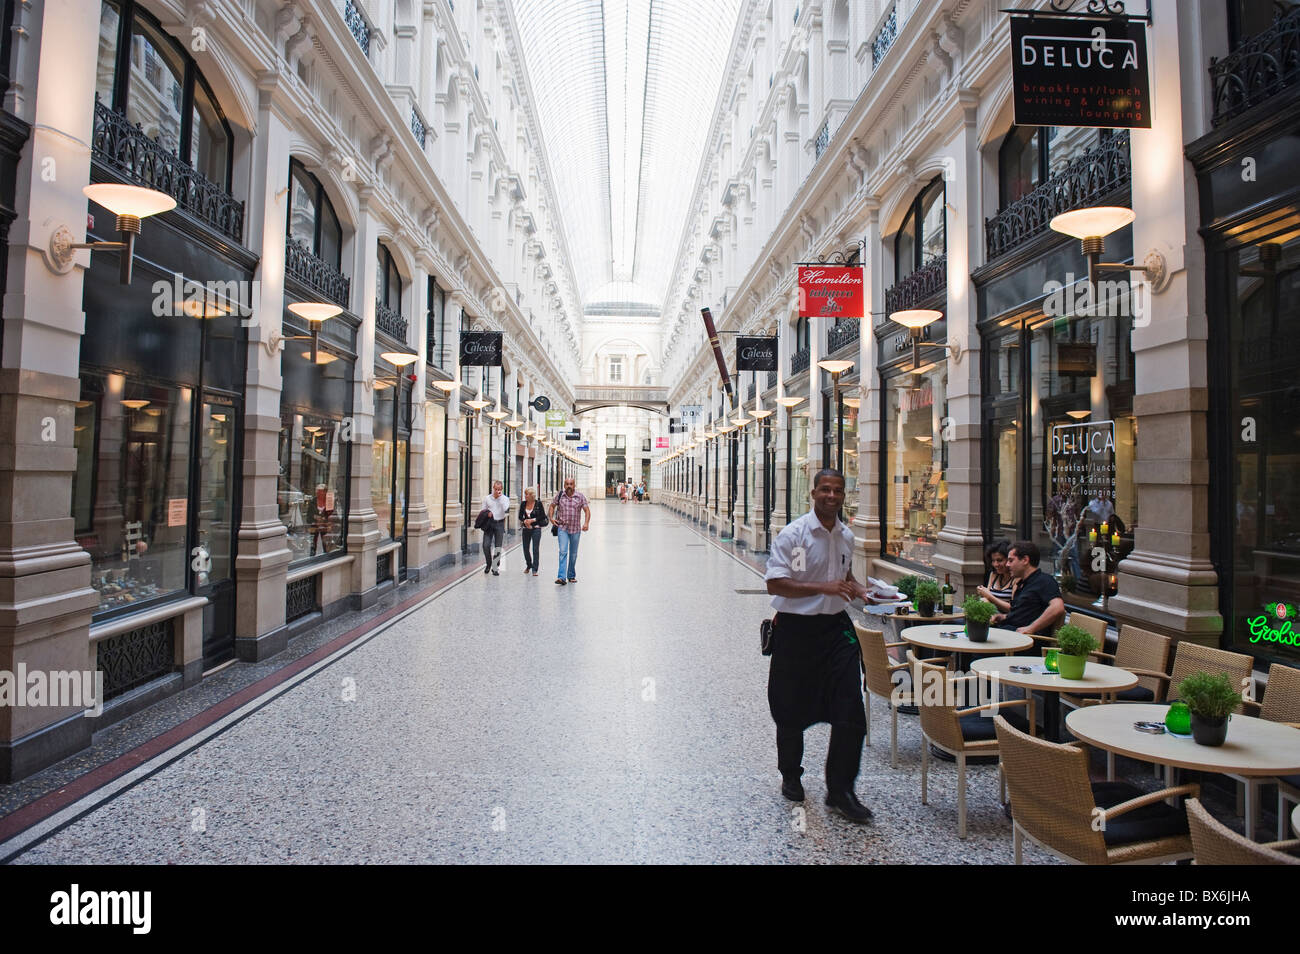 the passage shopping arcade den haag the hague netherlands stock photo 33337734 alamy. Black Bedroom Furniture Sets. Home Design Ideas